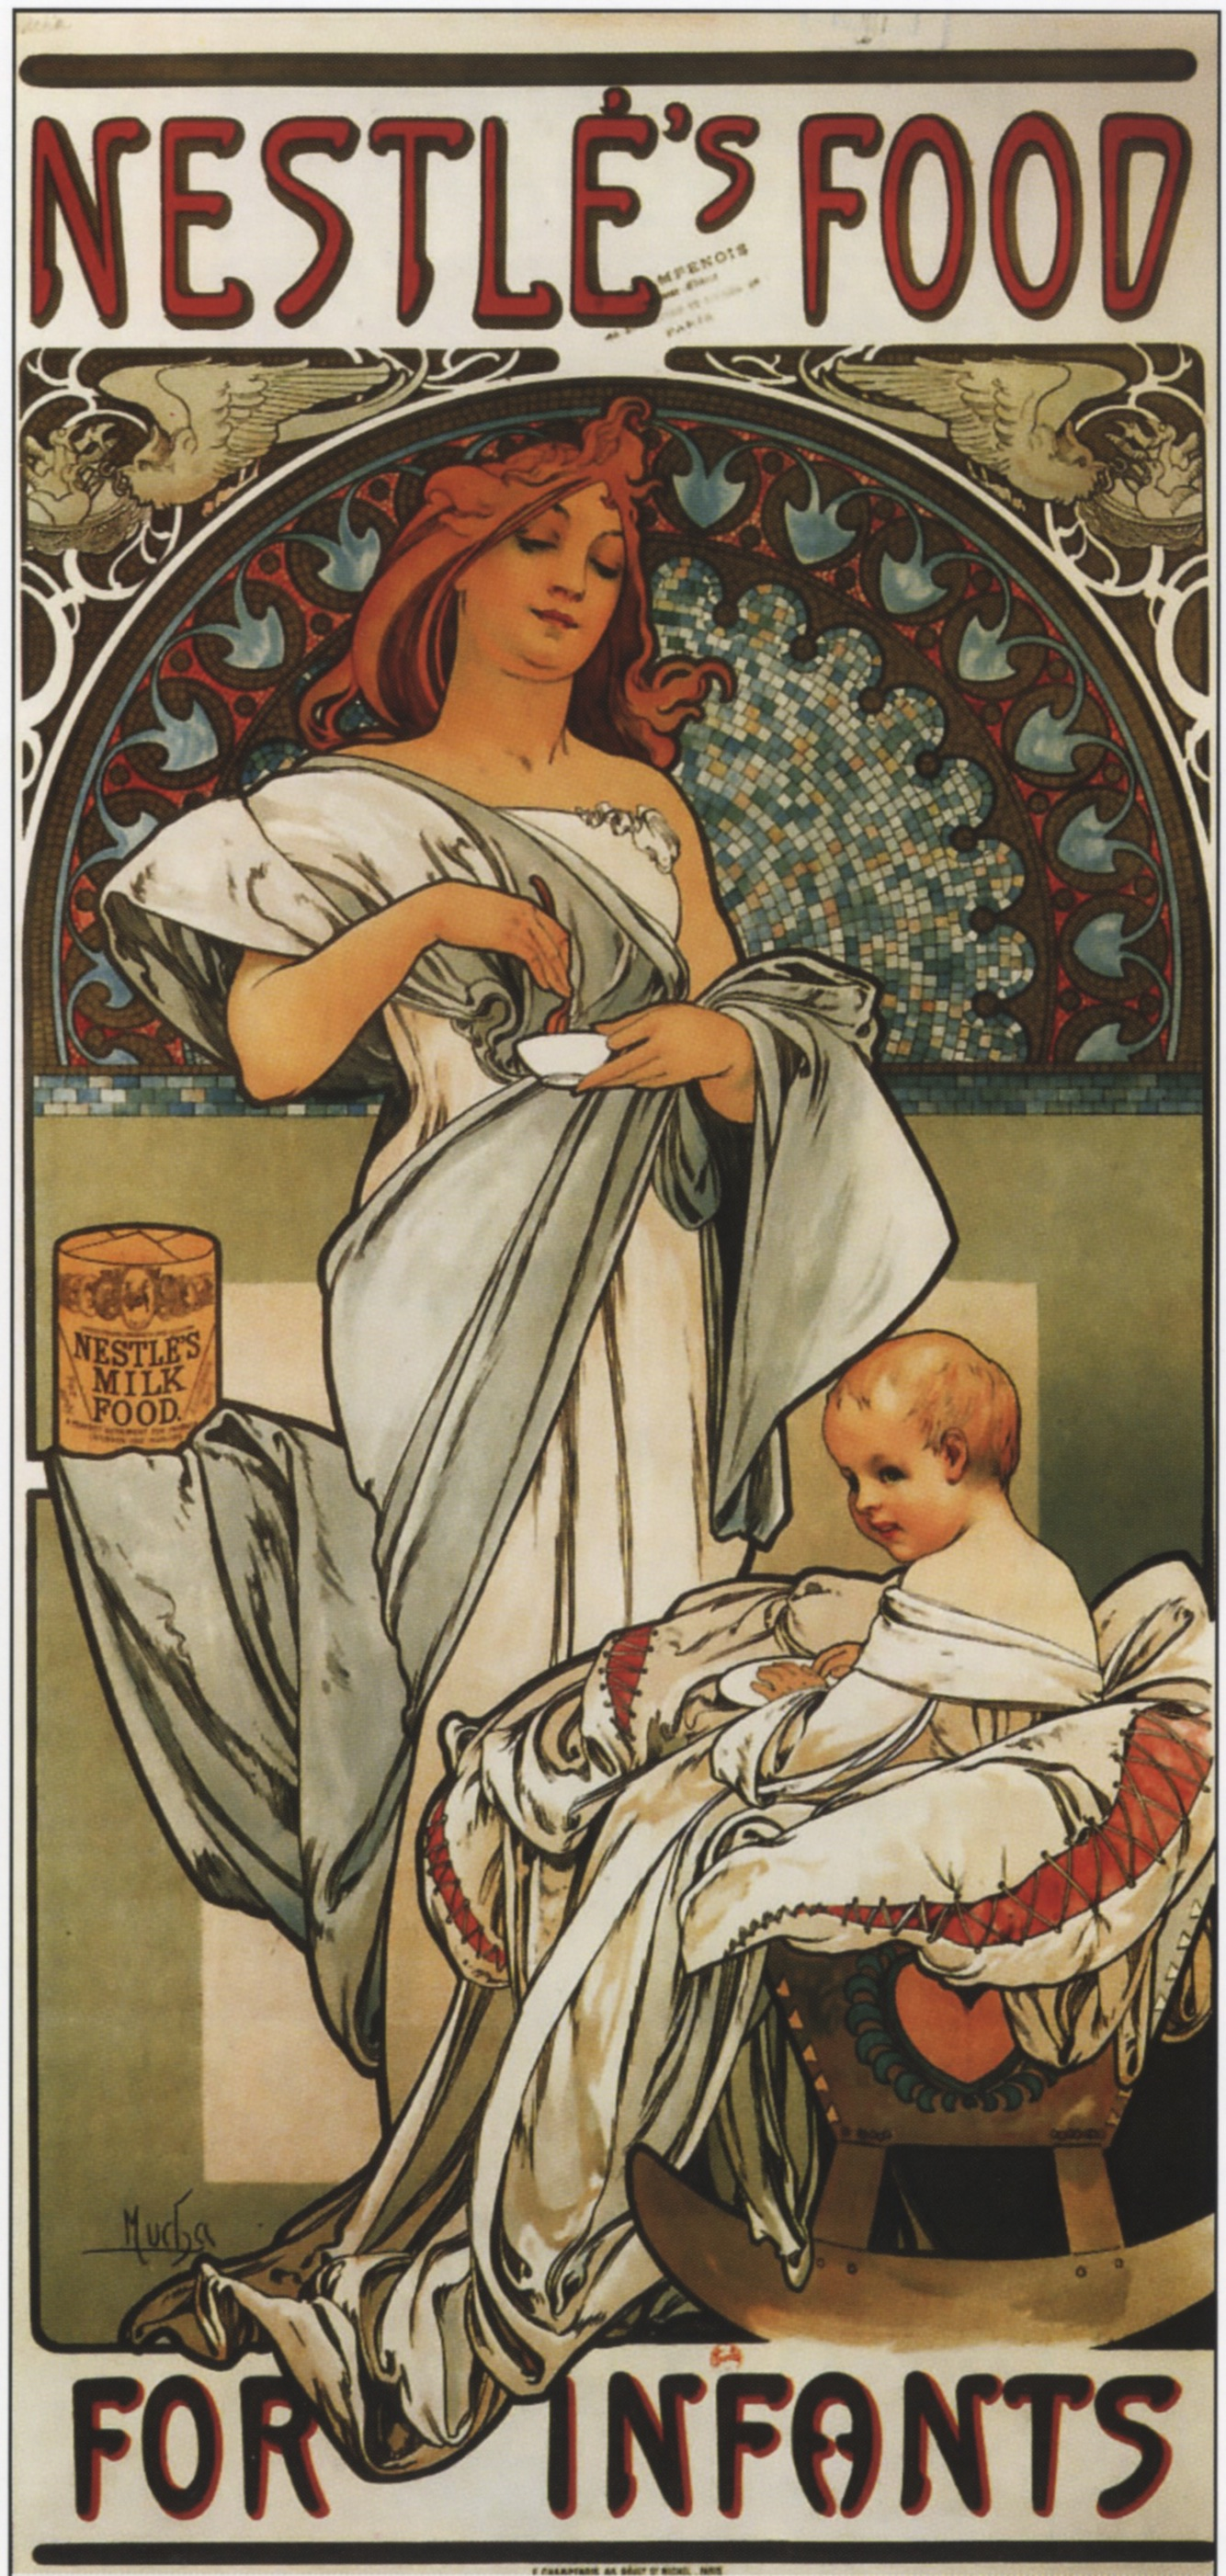 Alphonse Mucha, advertising poster for Nestlé's Food for Infants, 1897. A reminder that many large brands of today (Quaker Oats, Coca-Cola, Kellogg's, etc.) were already in business in the 19th century.